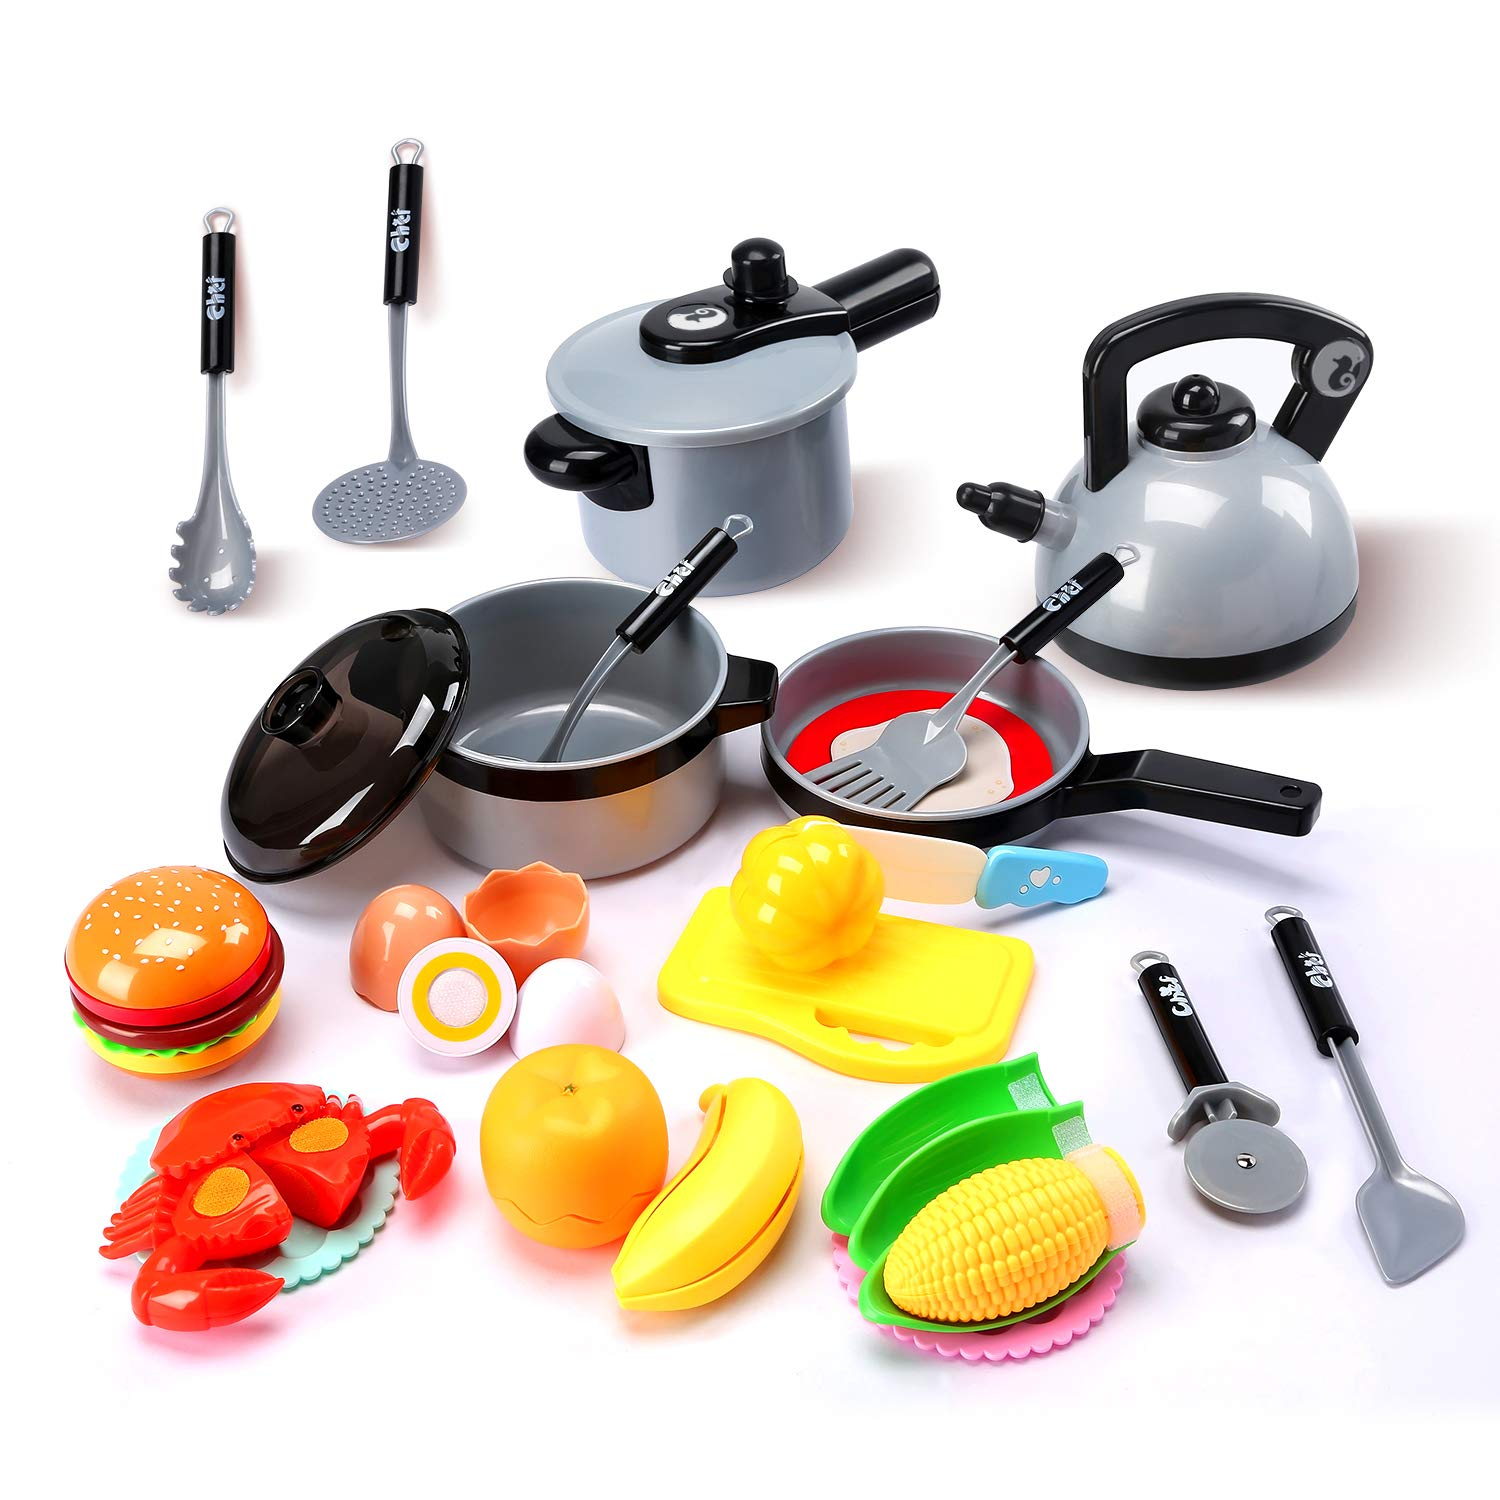 Cute Stone Kids Kitchen Pretend Play Toys,Play Cooking Set, Cookware Pots and Pans Playset, Peeling and Cutting Play Food Toys, Cooking Utensils Accessories, Learning Gift for Toddlers Baby Girls Boys